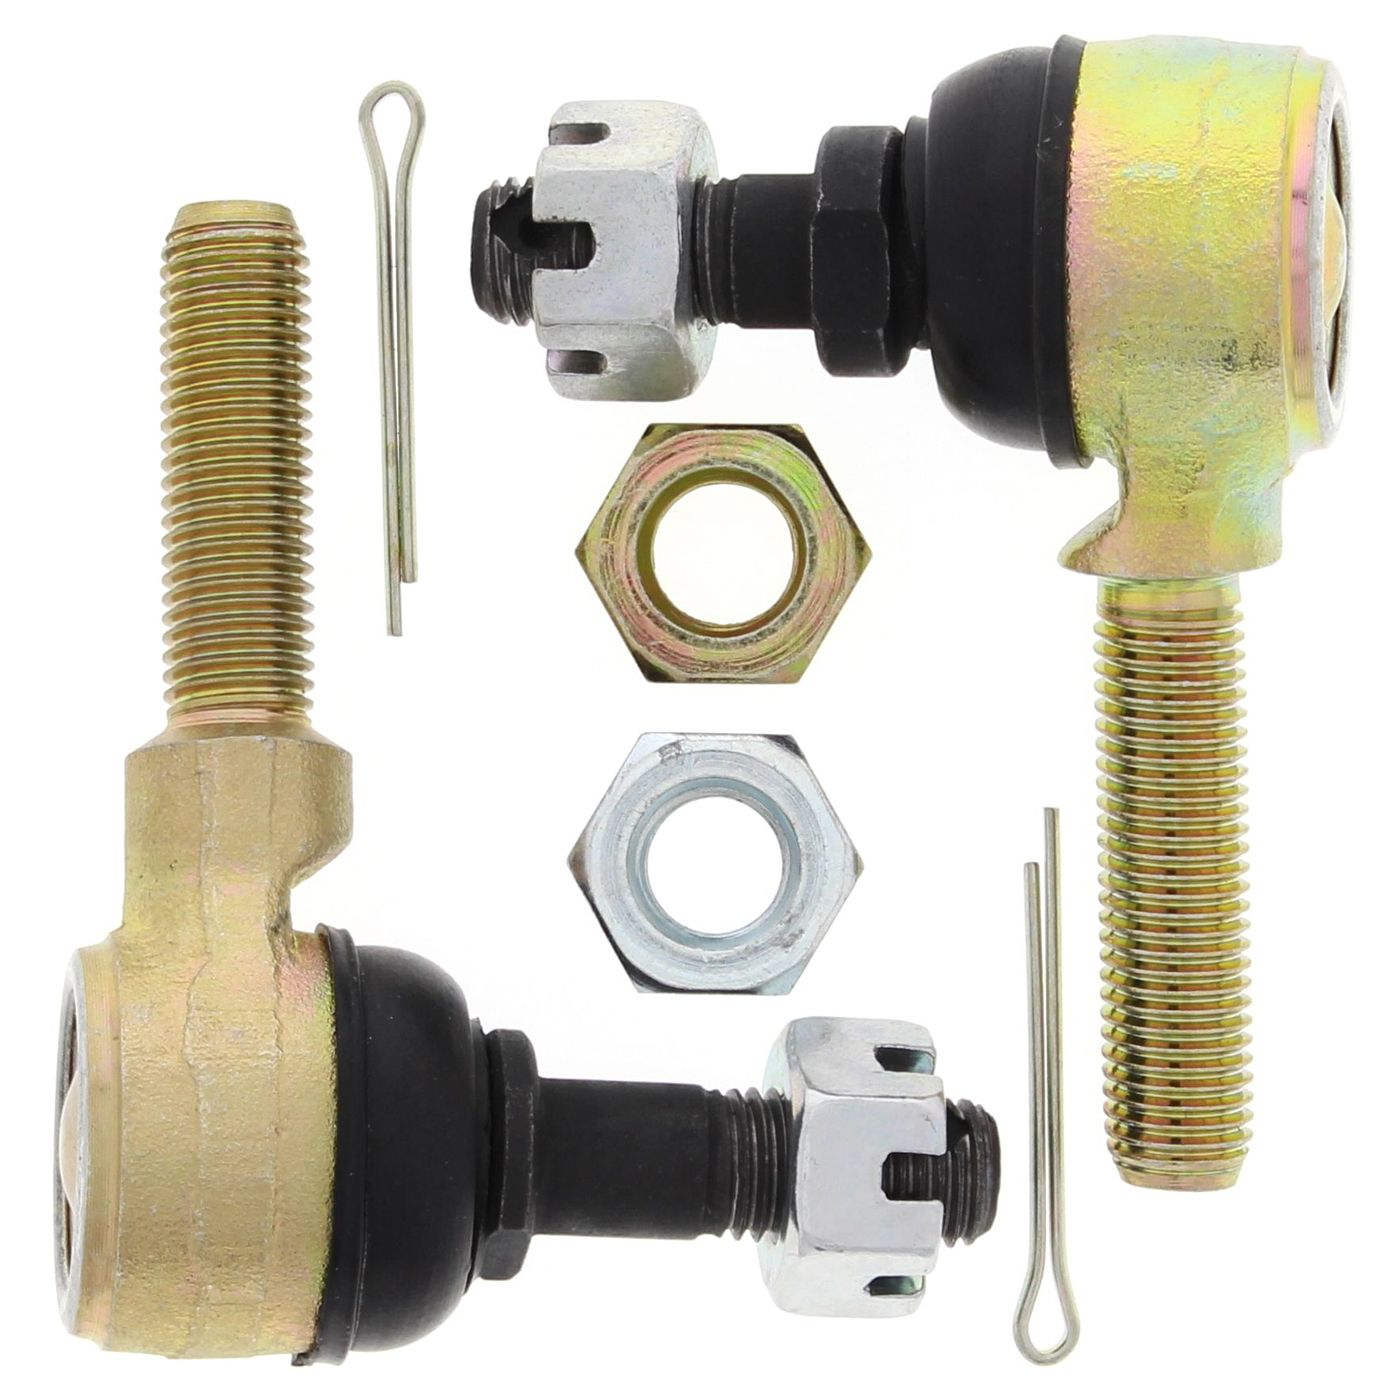 Wrp Tie Rod Ends - WRP511027 image